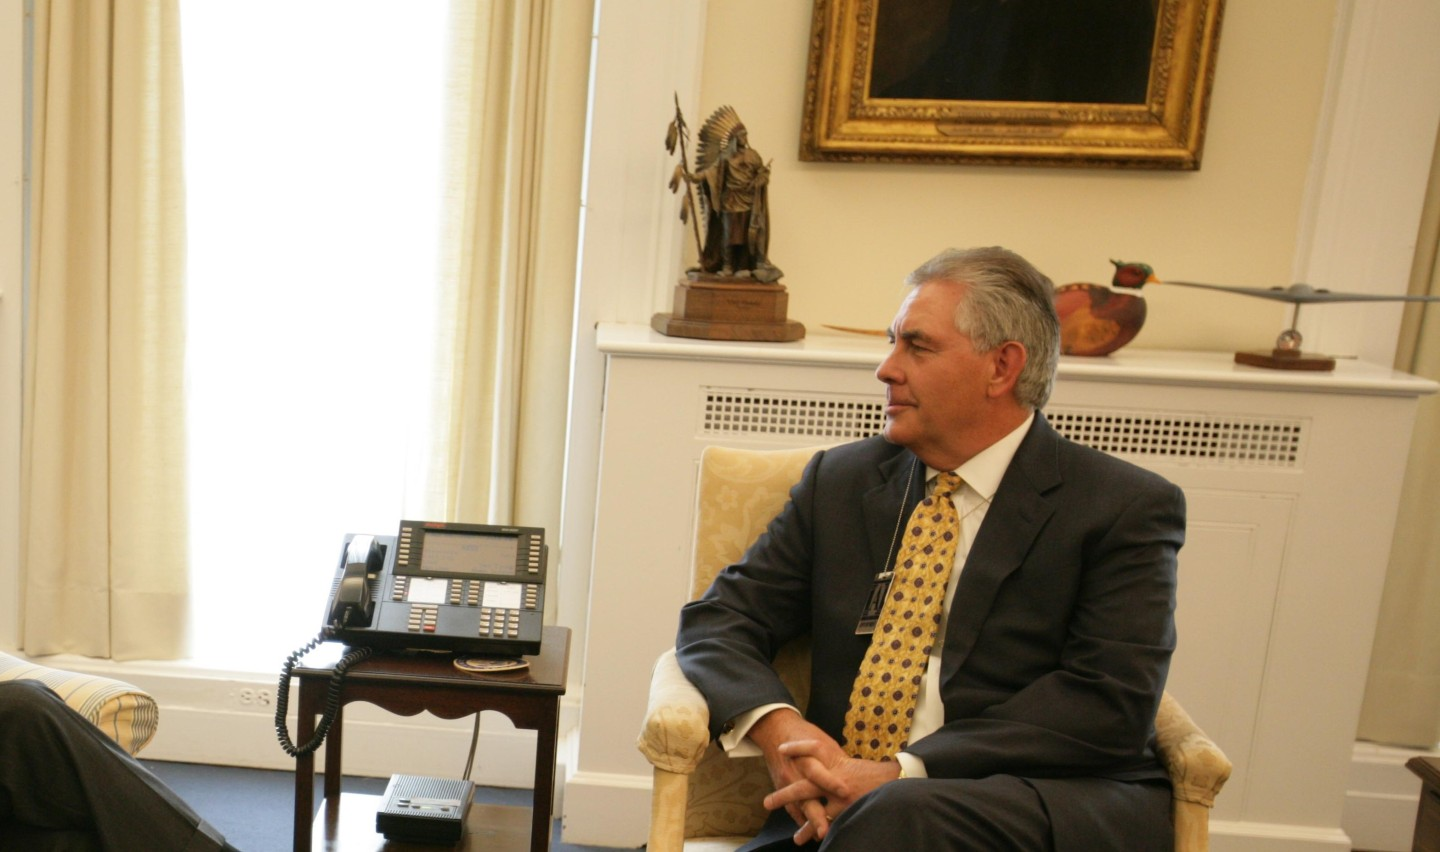 Rex Tillerson, Chairman and Chief Executive Officer, Exxon Mobile Corporation.